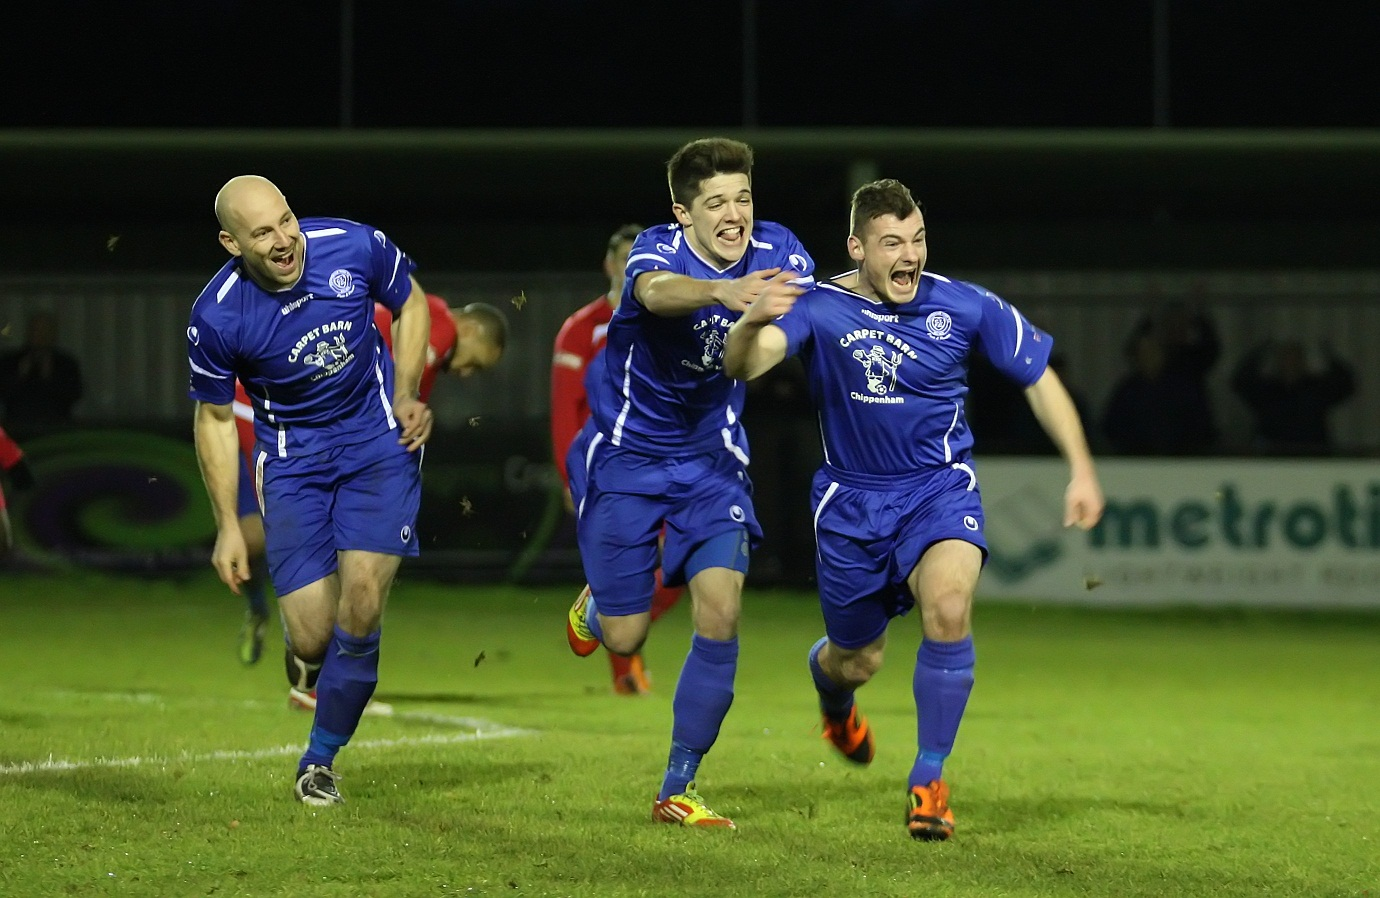 Luke Ballinger (right) celebrates his stunning strike (Picture by Robin Foster)